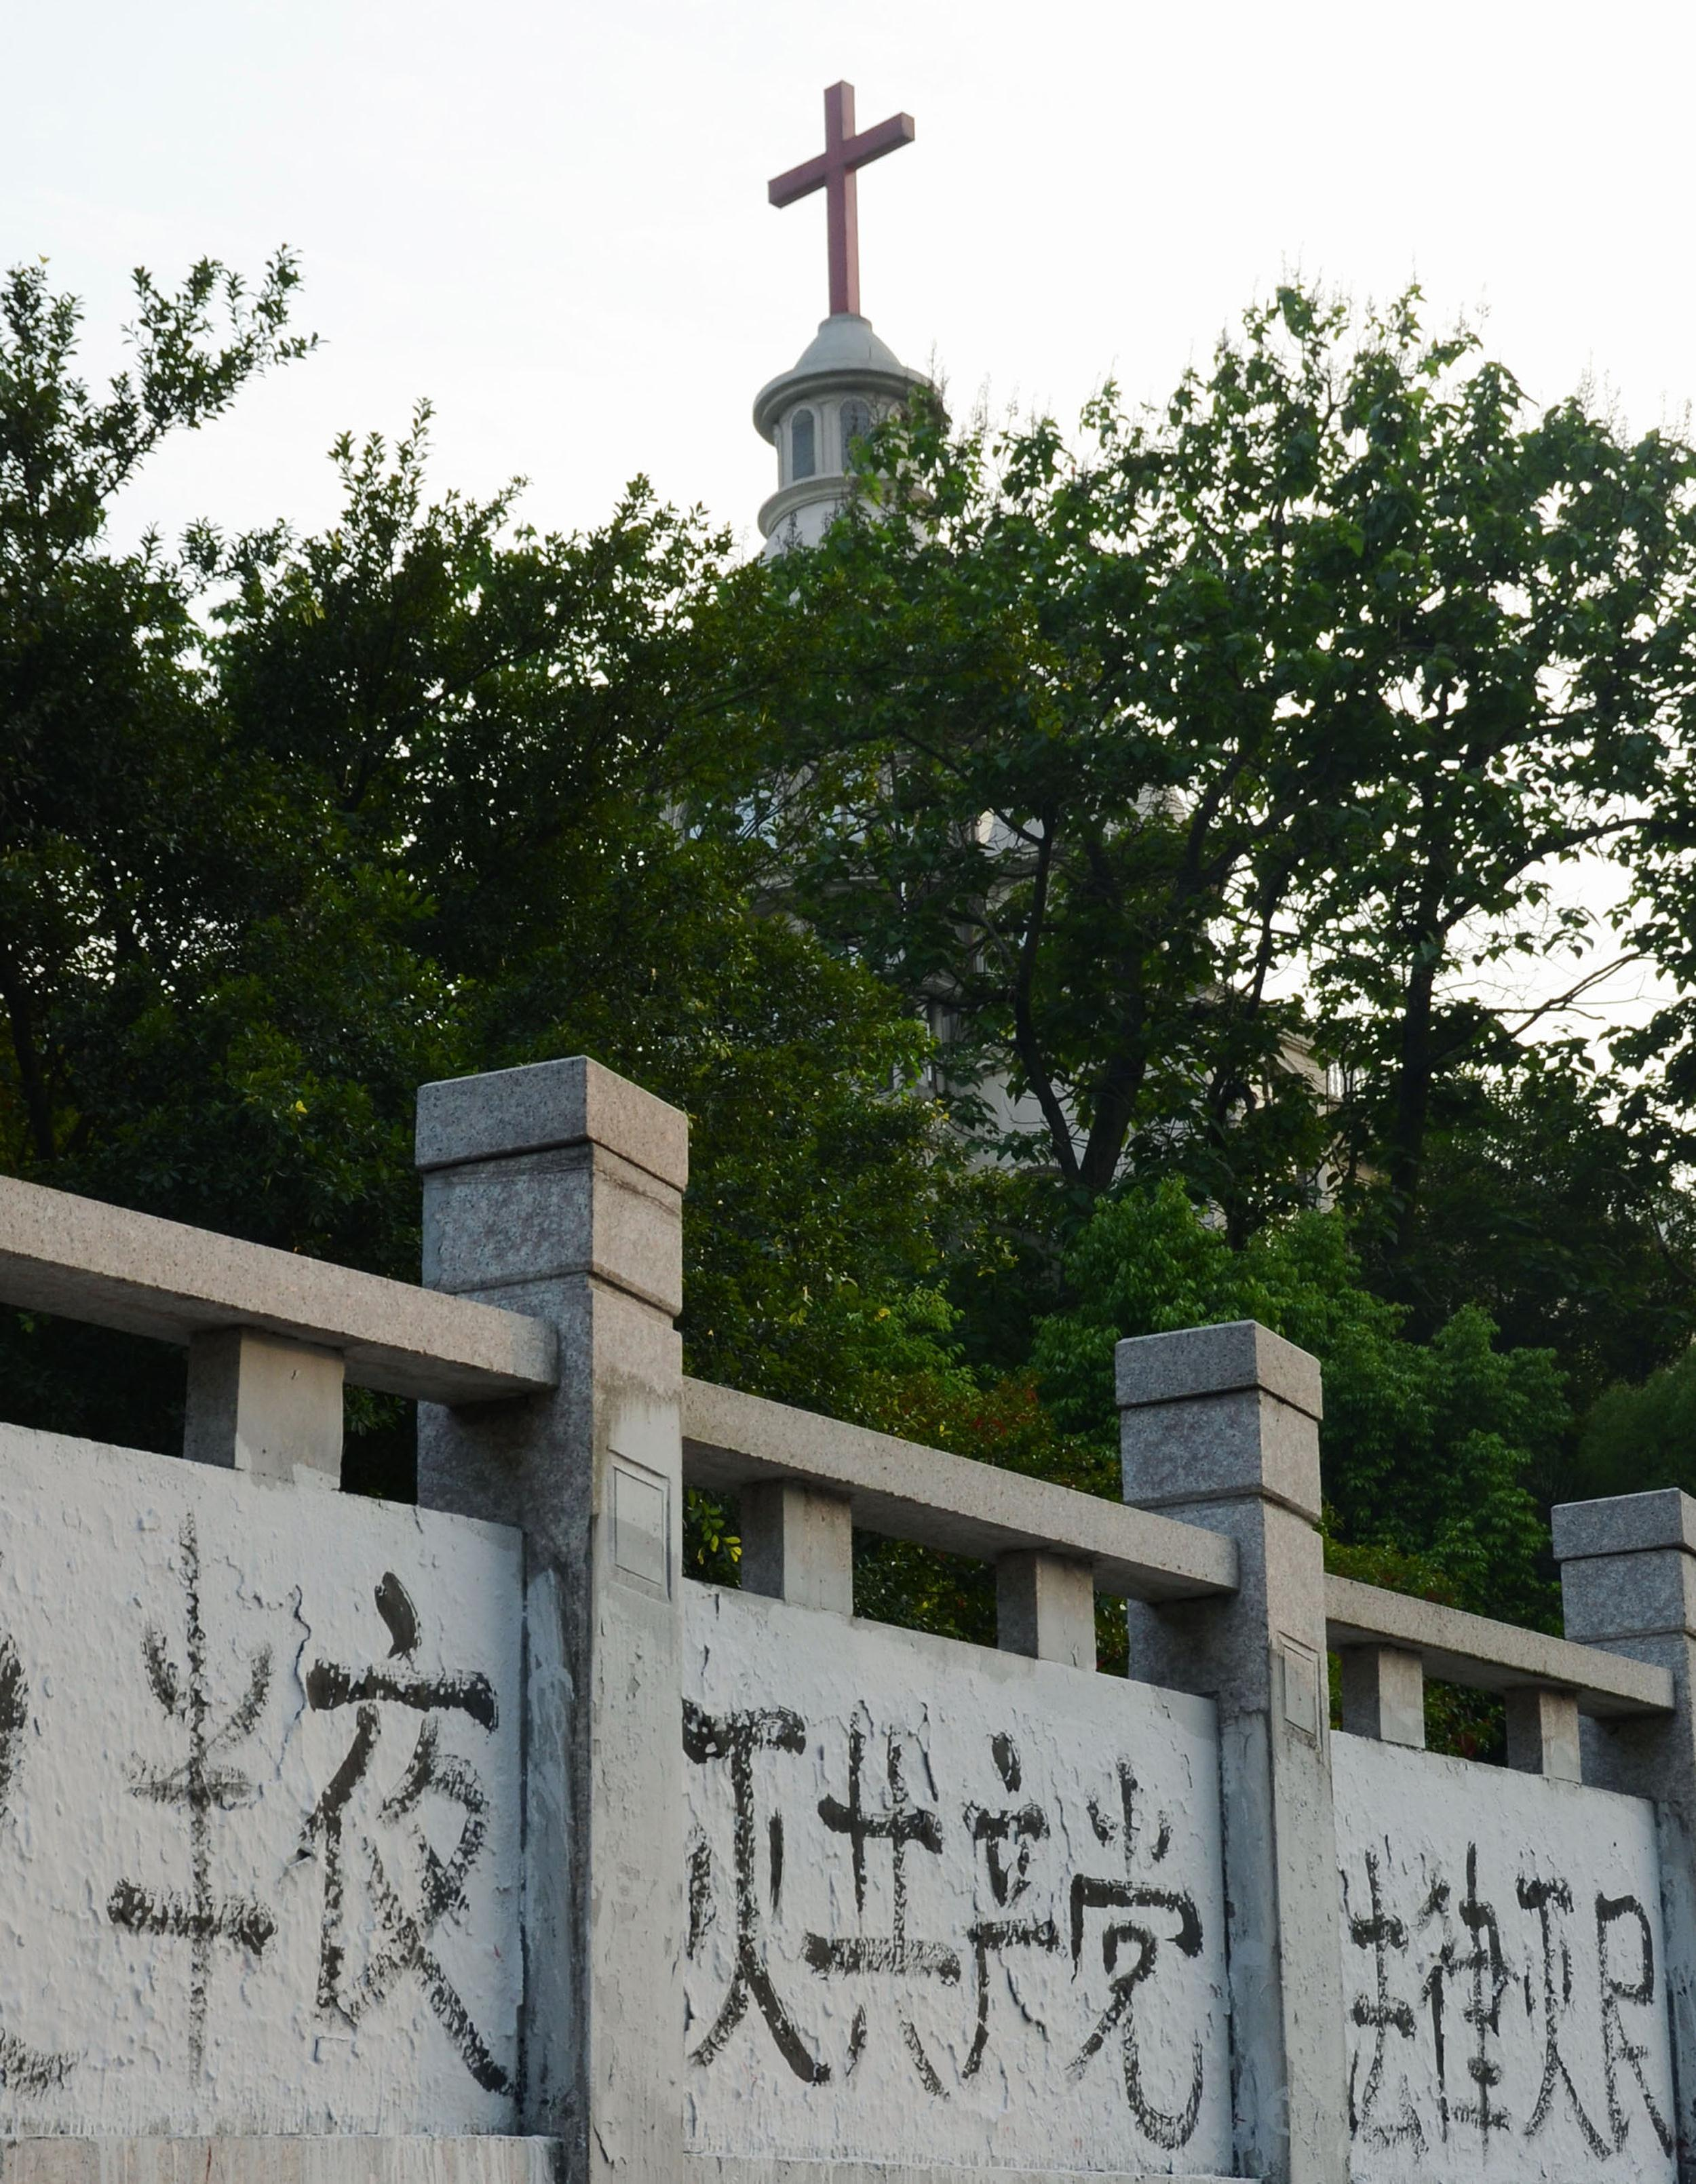 Graffiti denouncing the Chinese Communist Party on a wall photographed on April 28, 2014, near a church in Wenzhou, Zhejiang Province